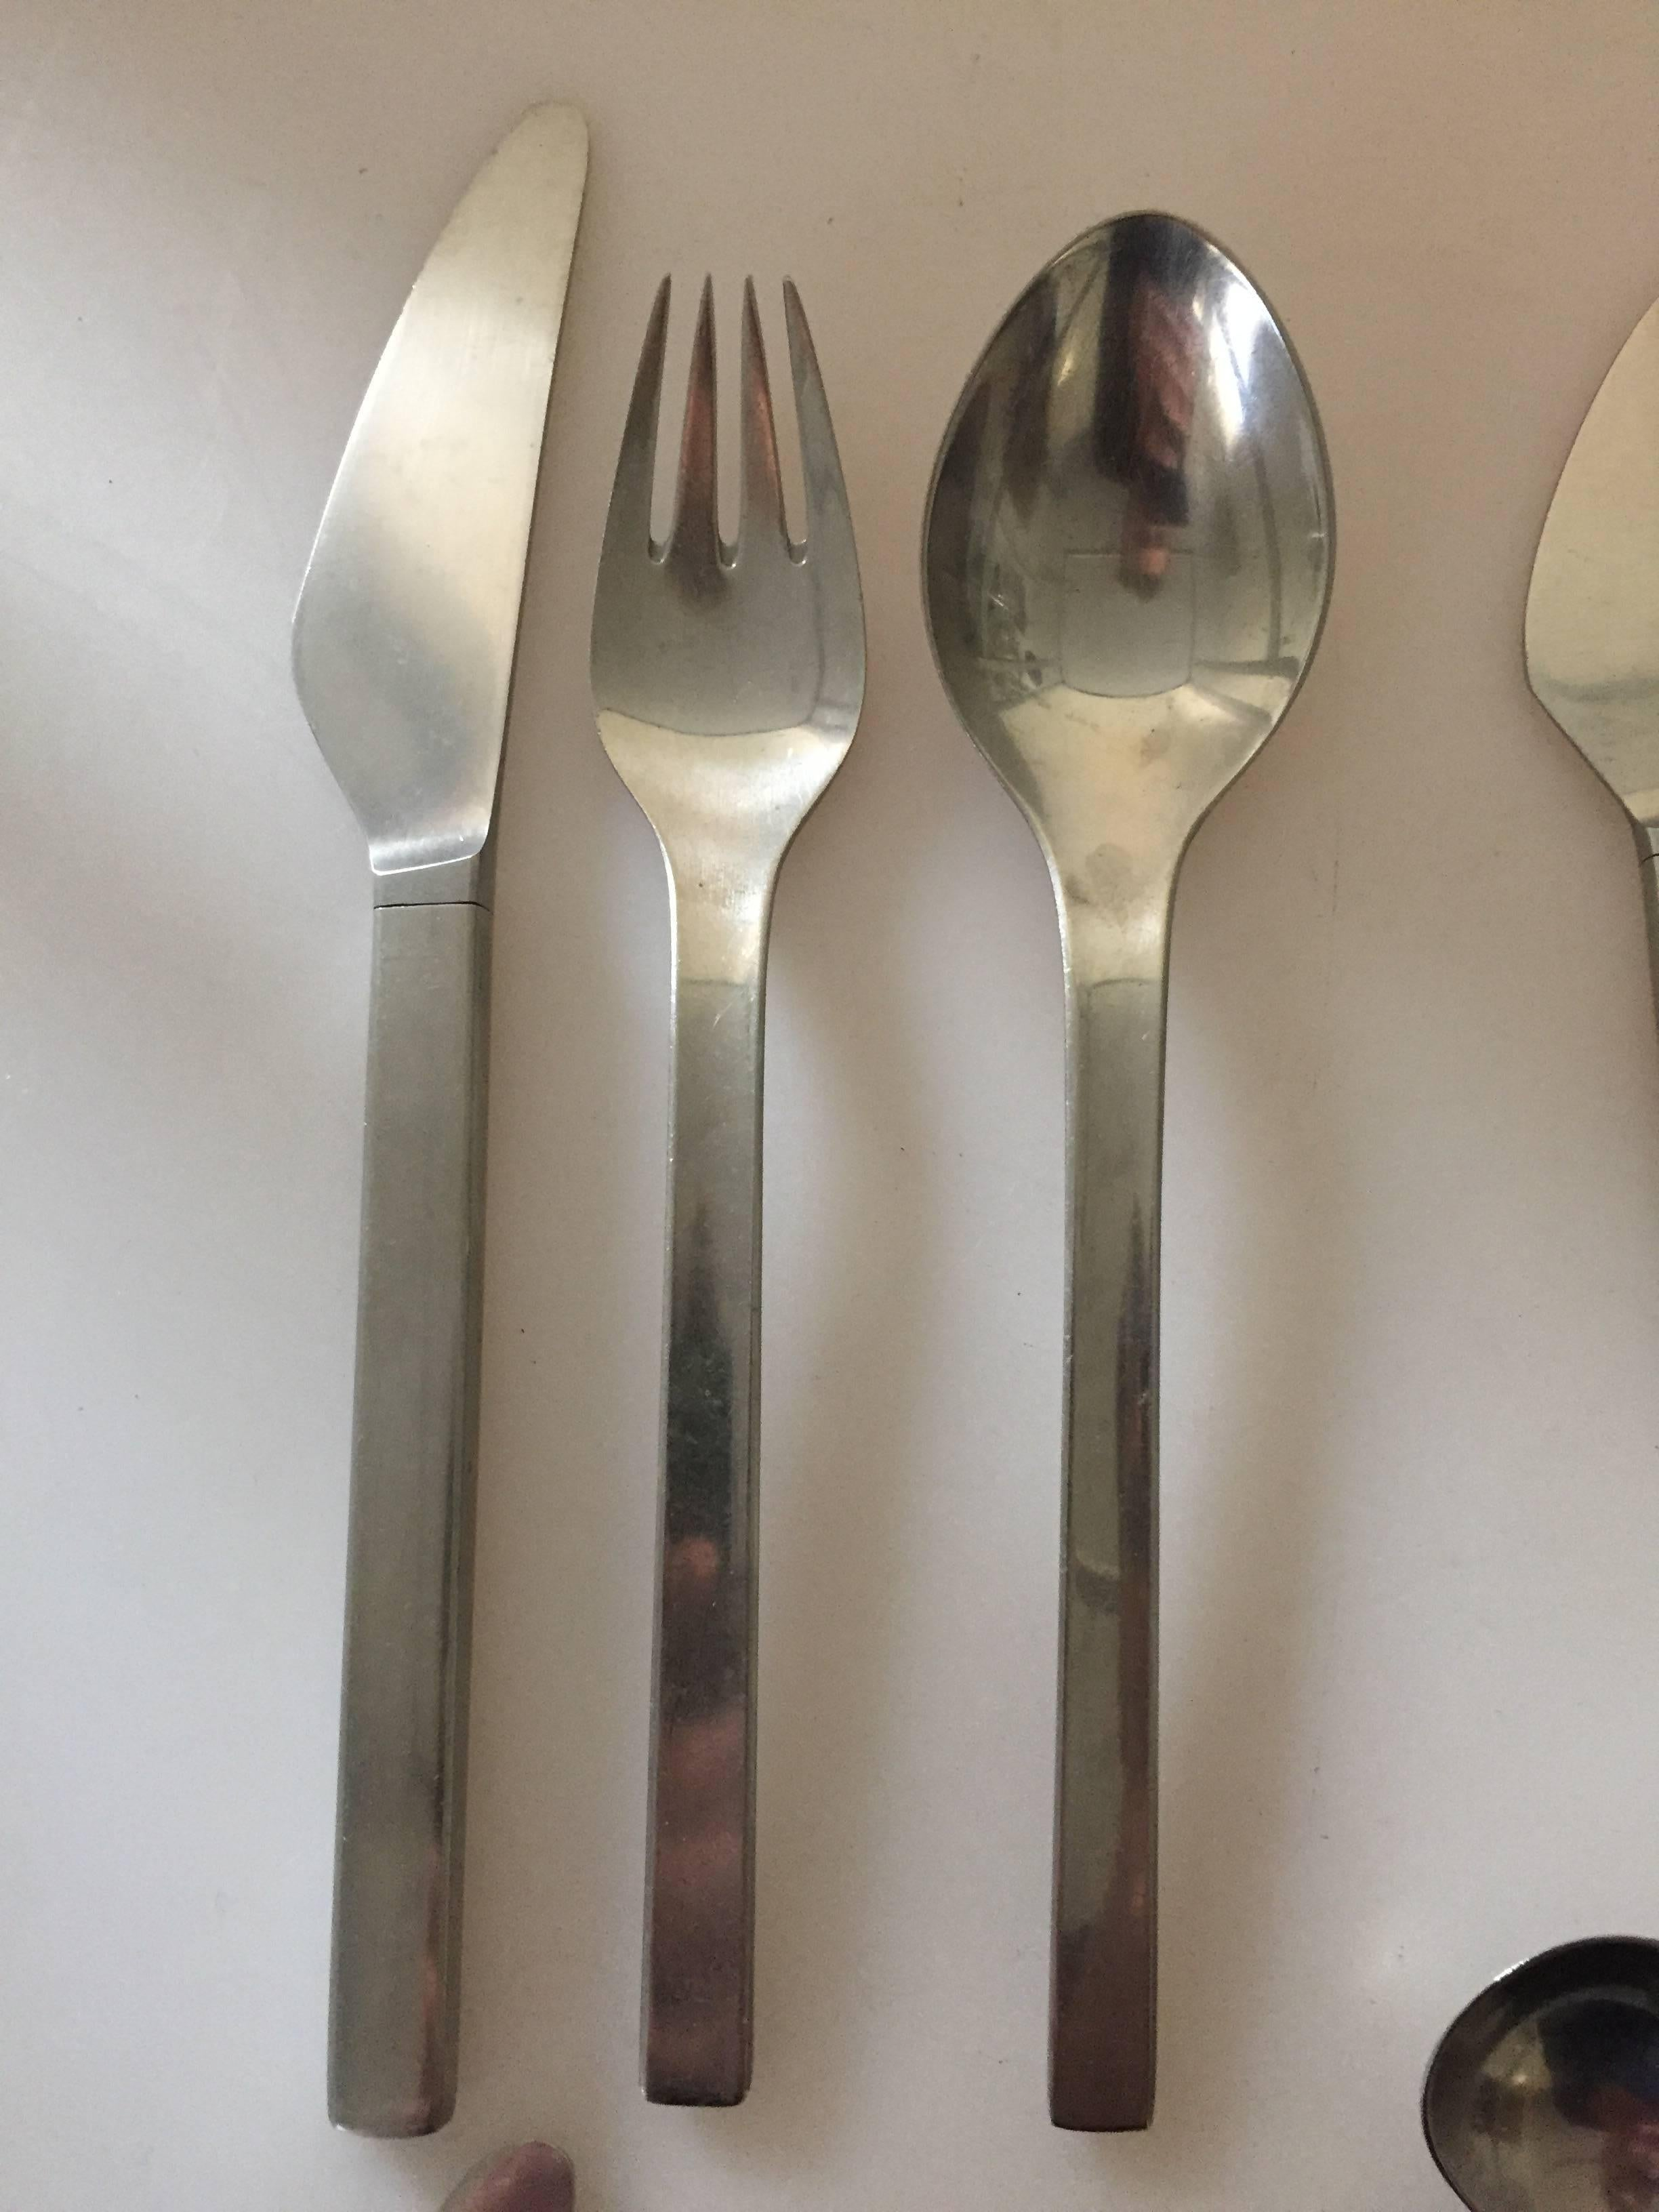 c70dddfb5b7c Georg Jensen Stainless Steel Flatware Tuja Tanaguil Set of 72 Pieces For  Sale at 1stdibs